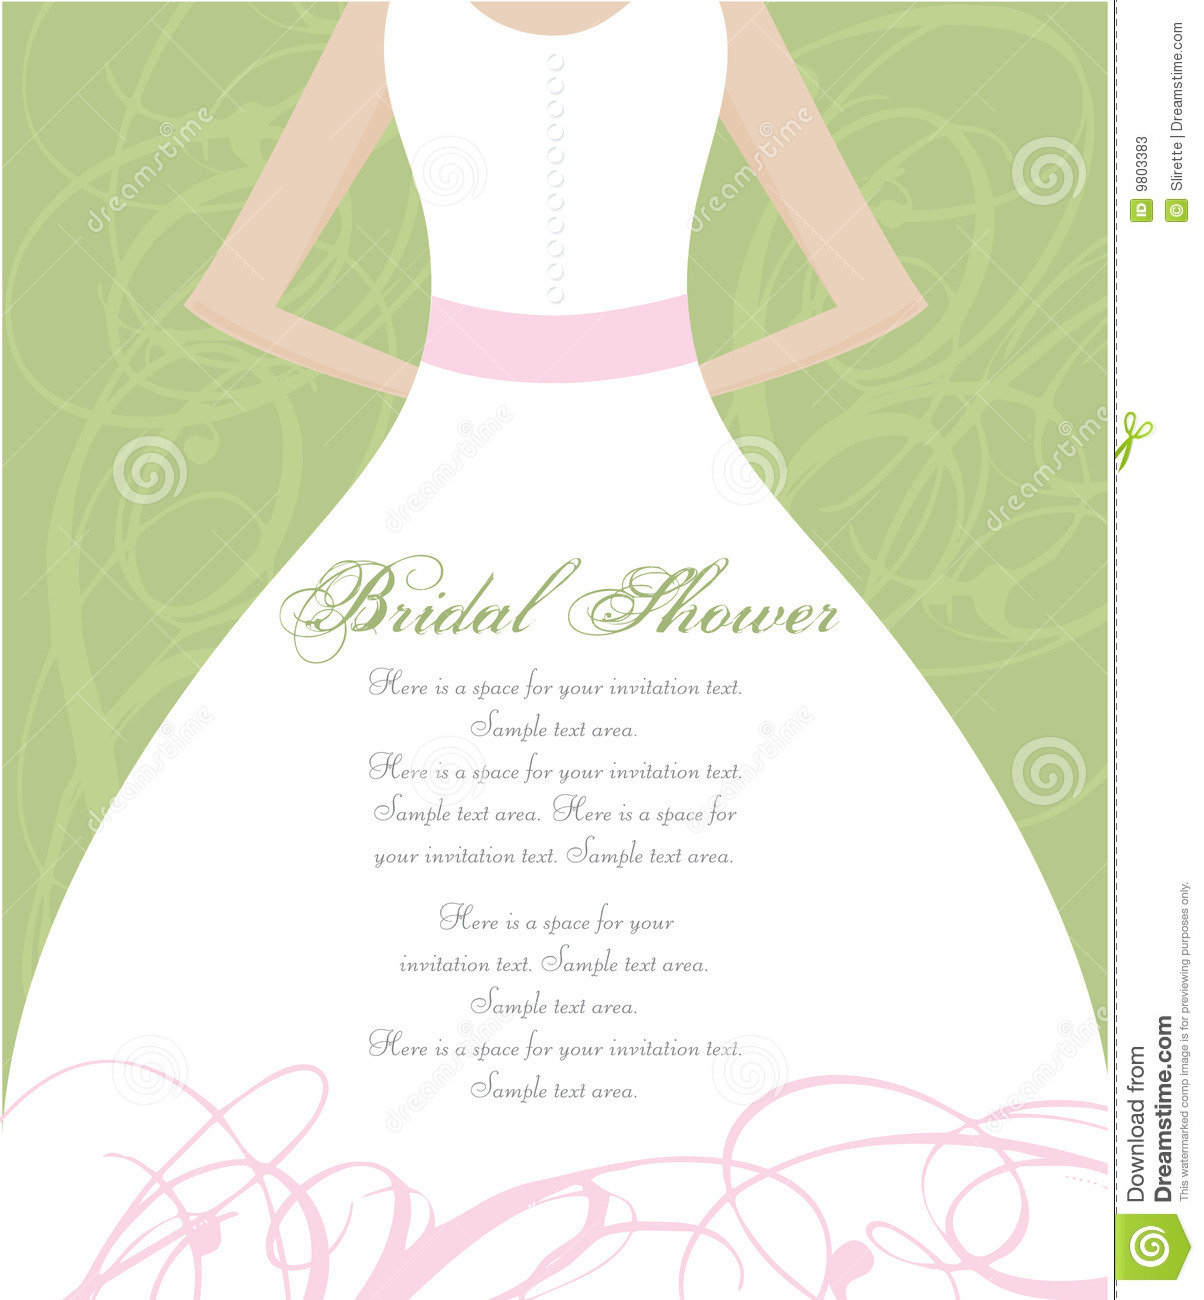 Wedding Shower Invitation Samples – Sample of Bridal Shower Invitation